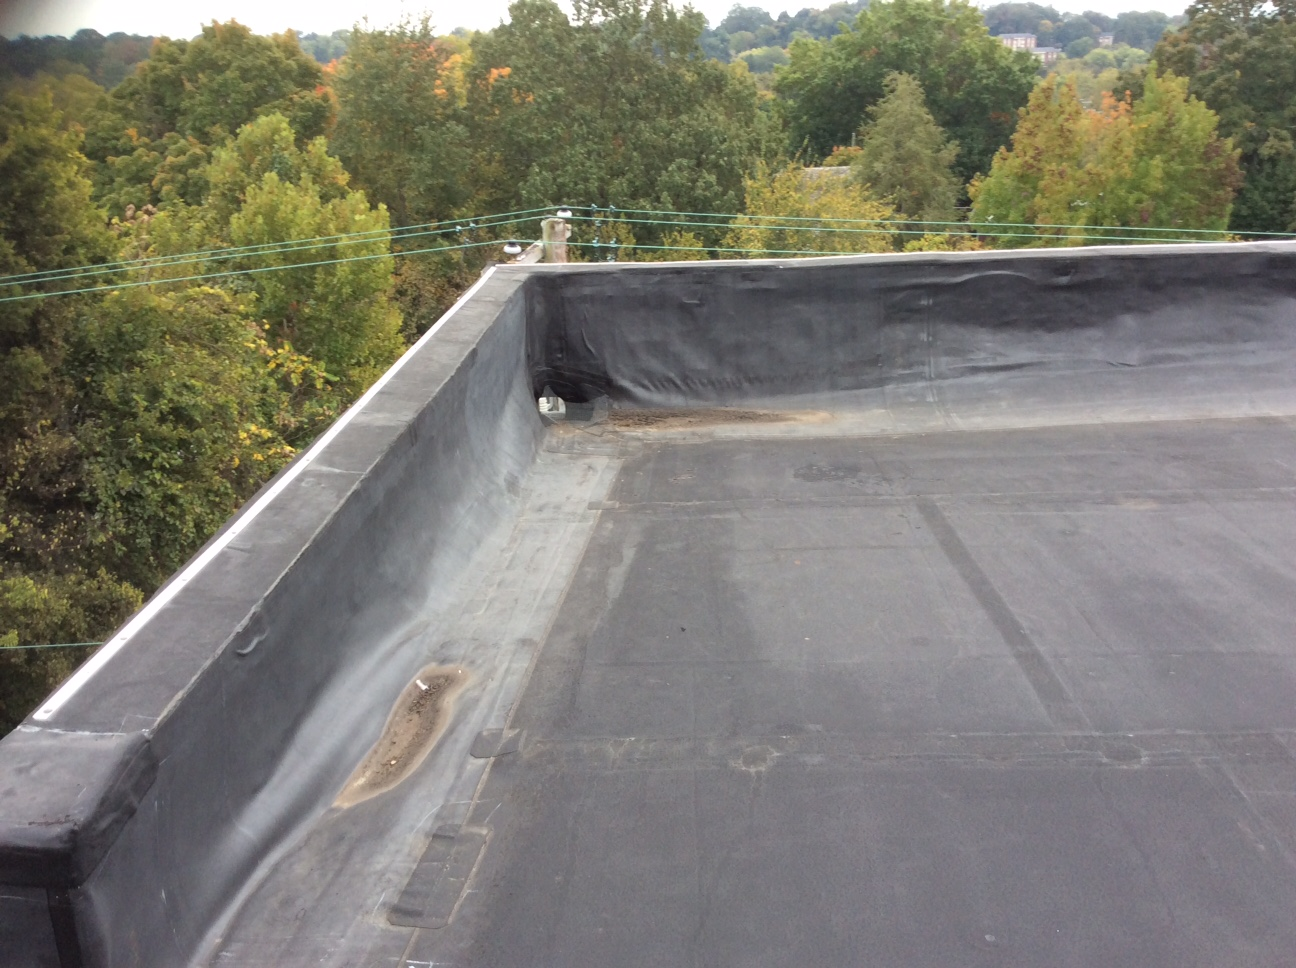 This is a view of the wall of a flat roof.